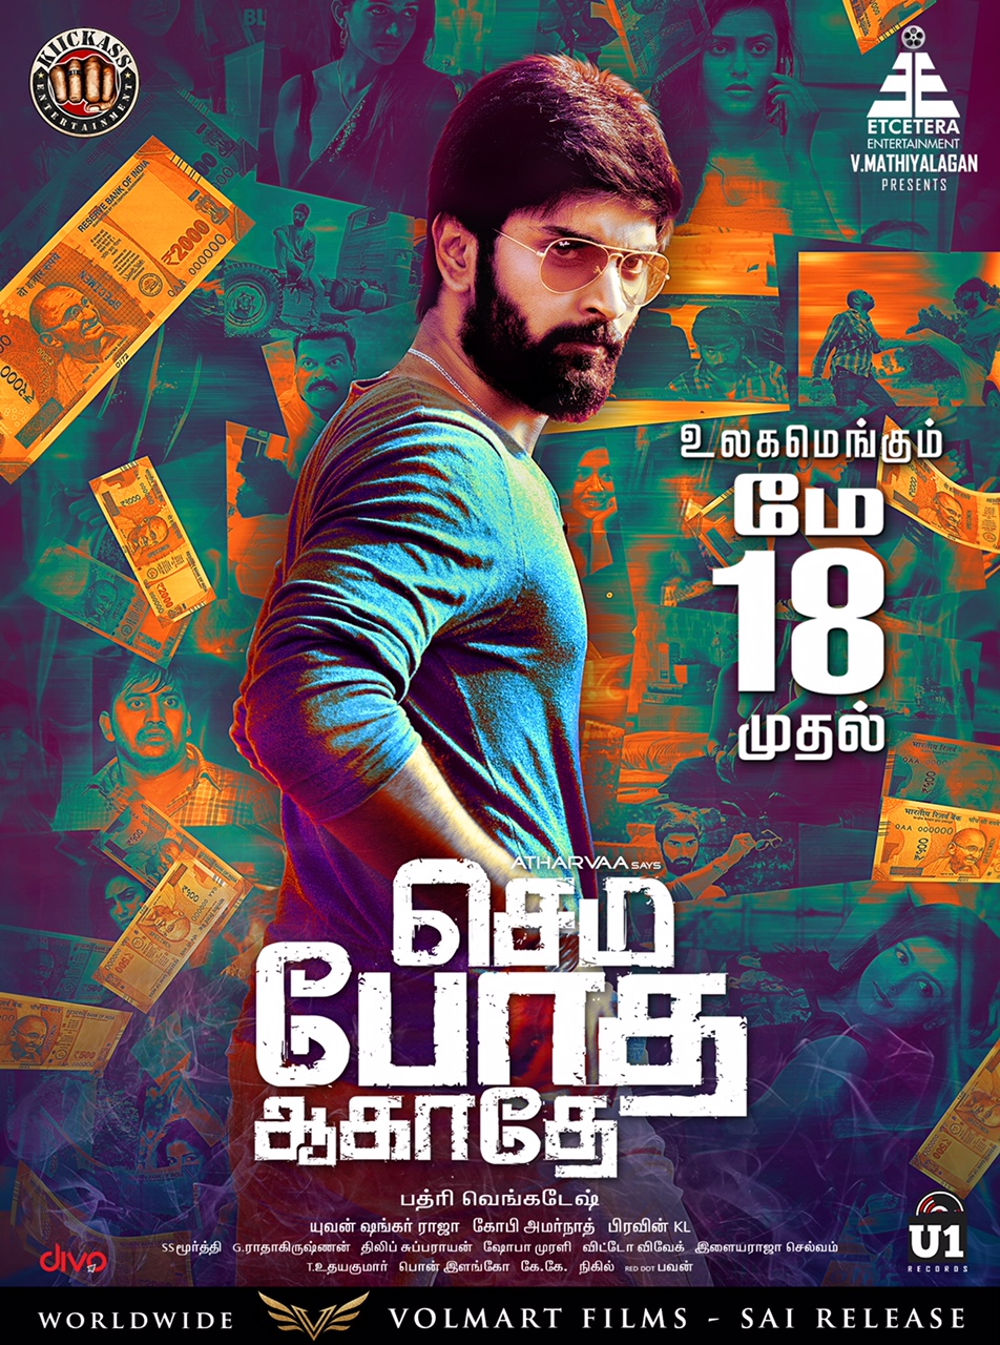 Atharva Semma Botha Aagathey Release Date May 18th Poster